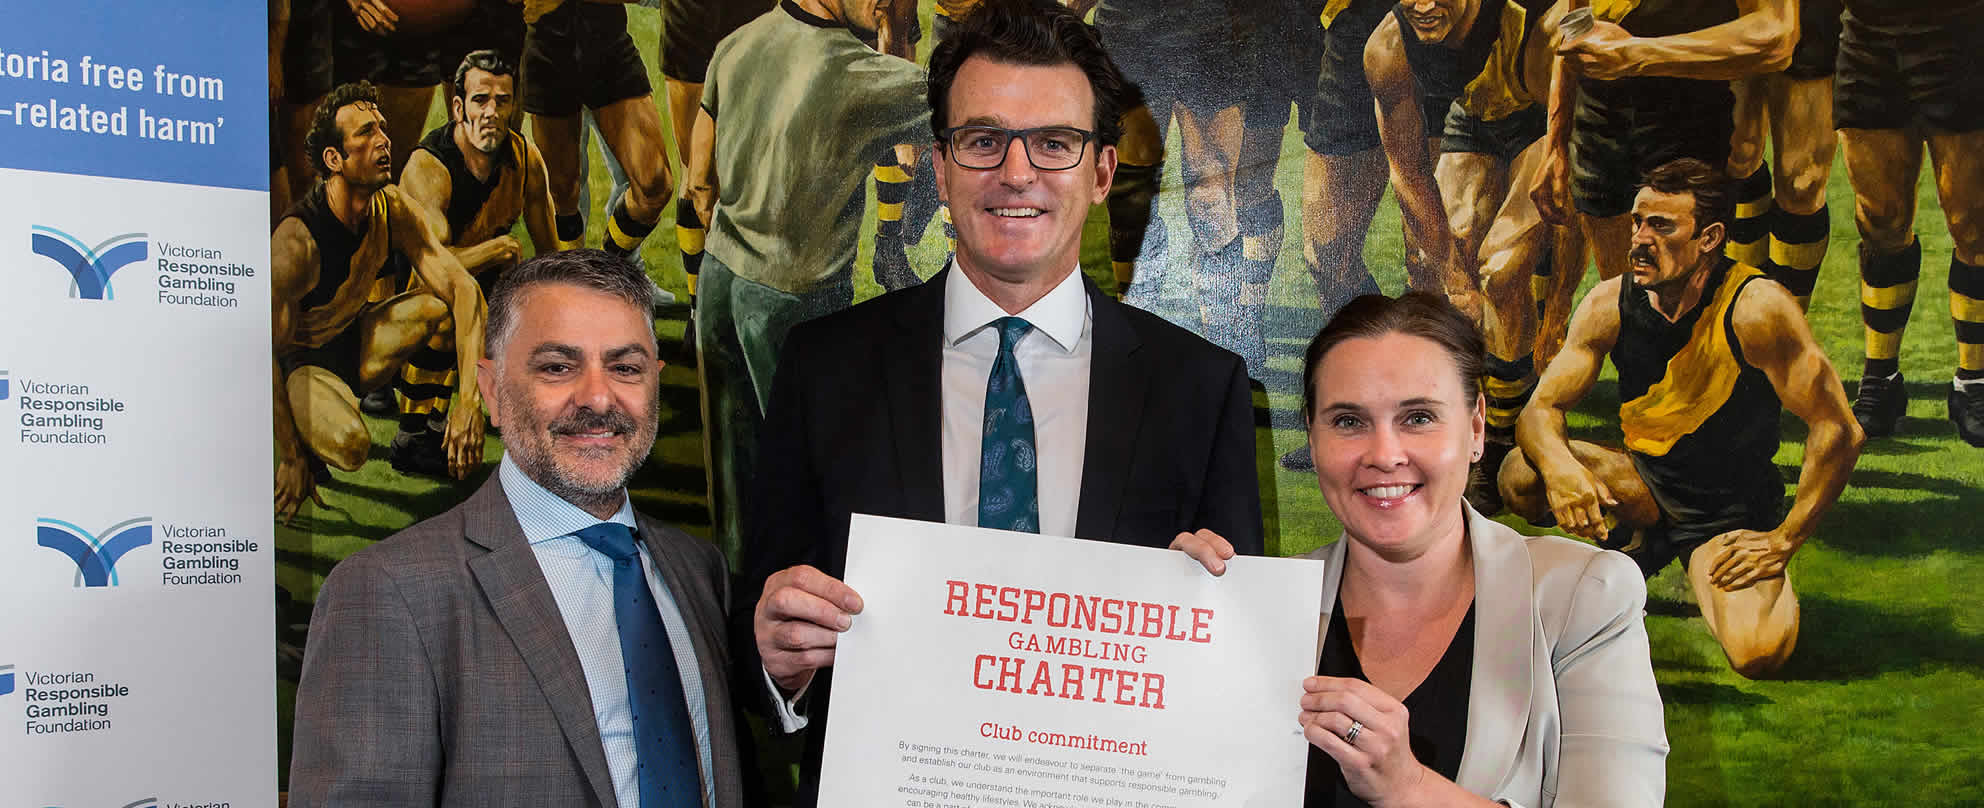 (L to R) Victorian Responsible Gambling Foundation chief executive Serge Sardo, Richmond Football Club chief executive Brendon Gale and Minister for Gaming and Liquor Regulation Jane Garrett